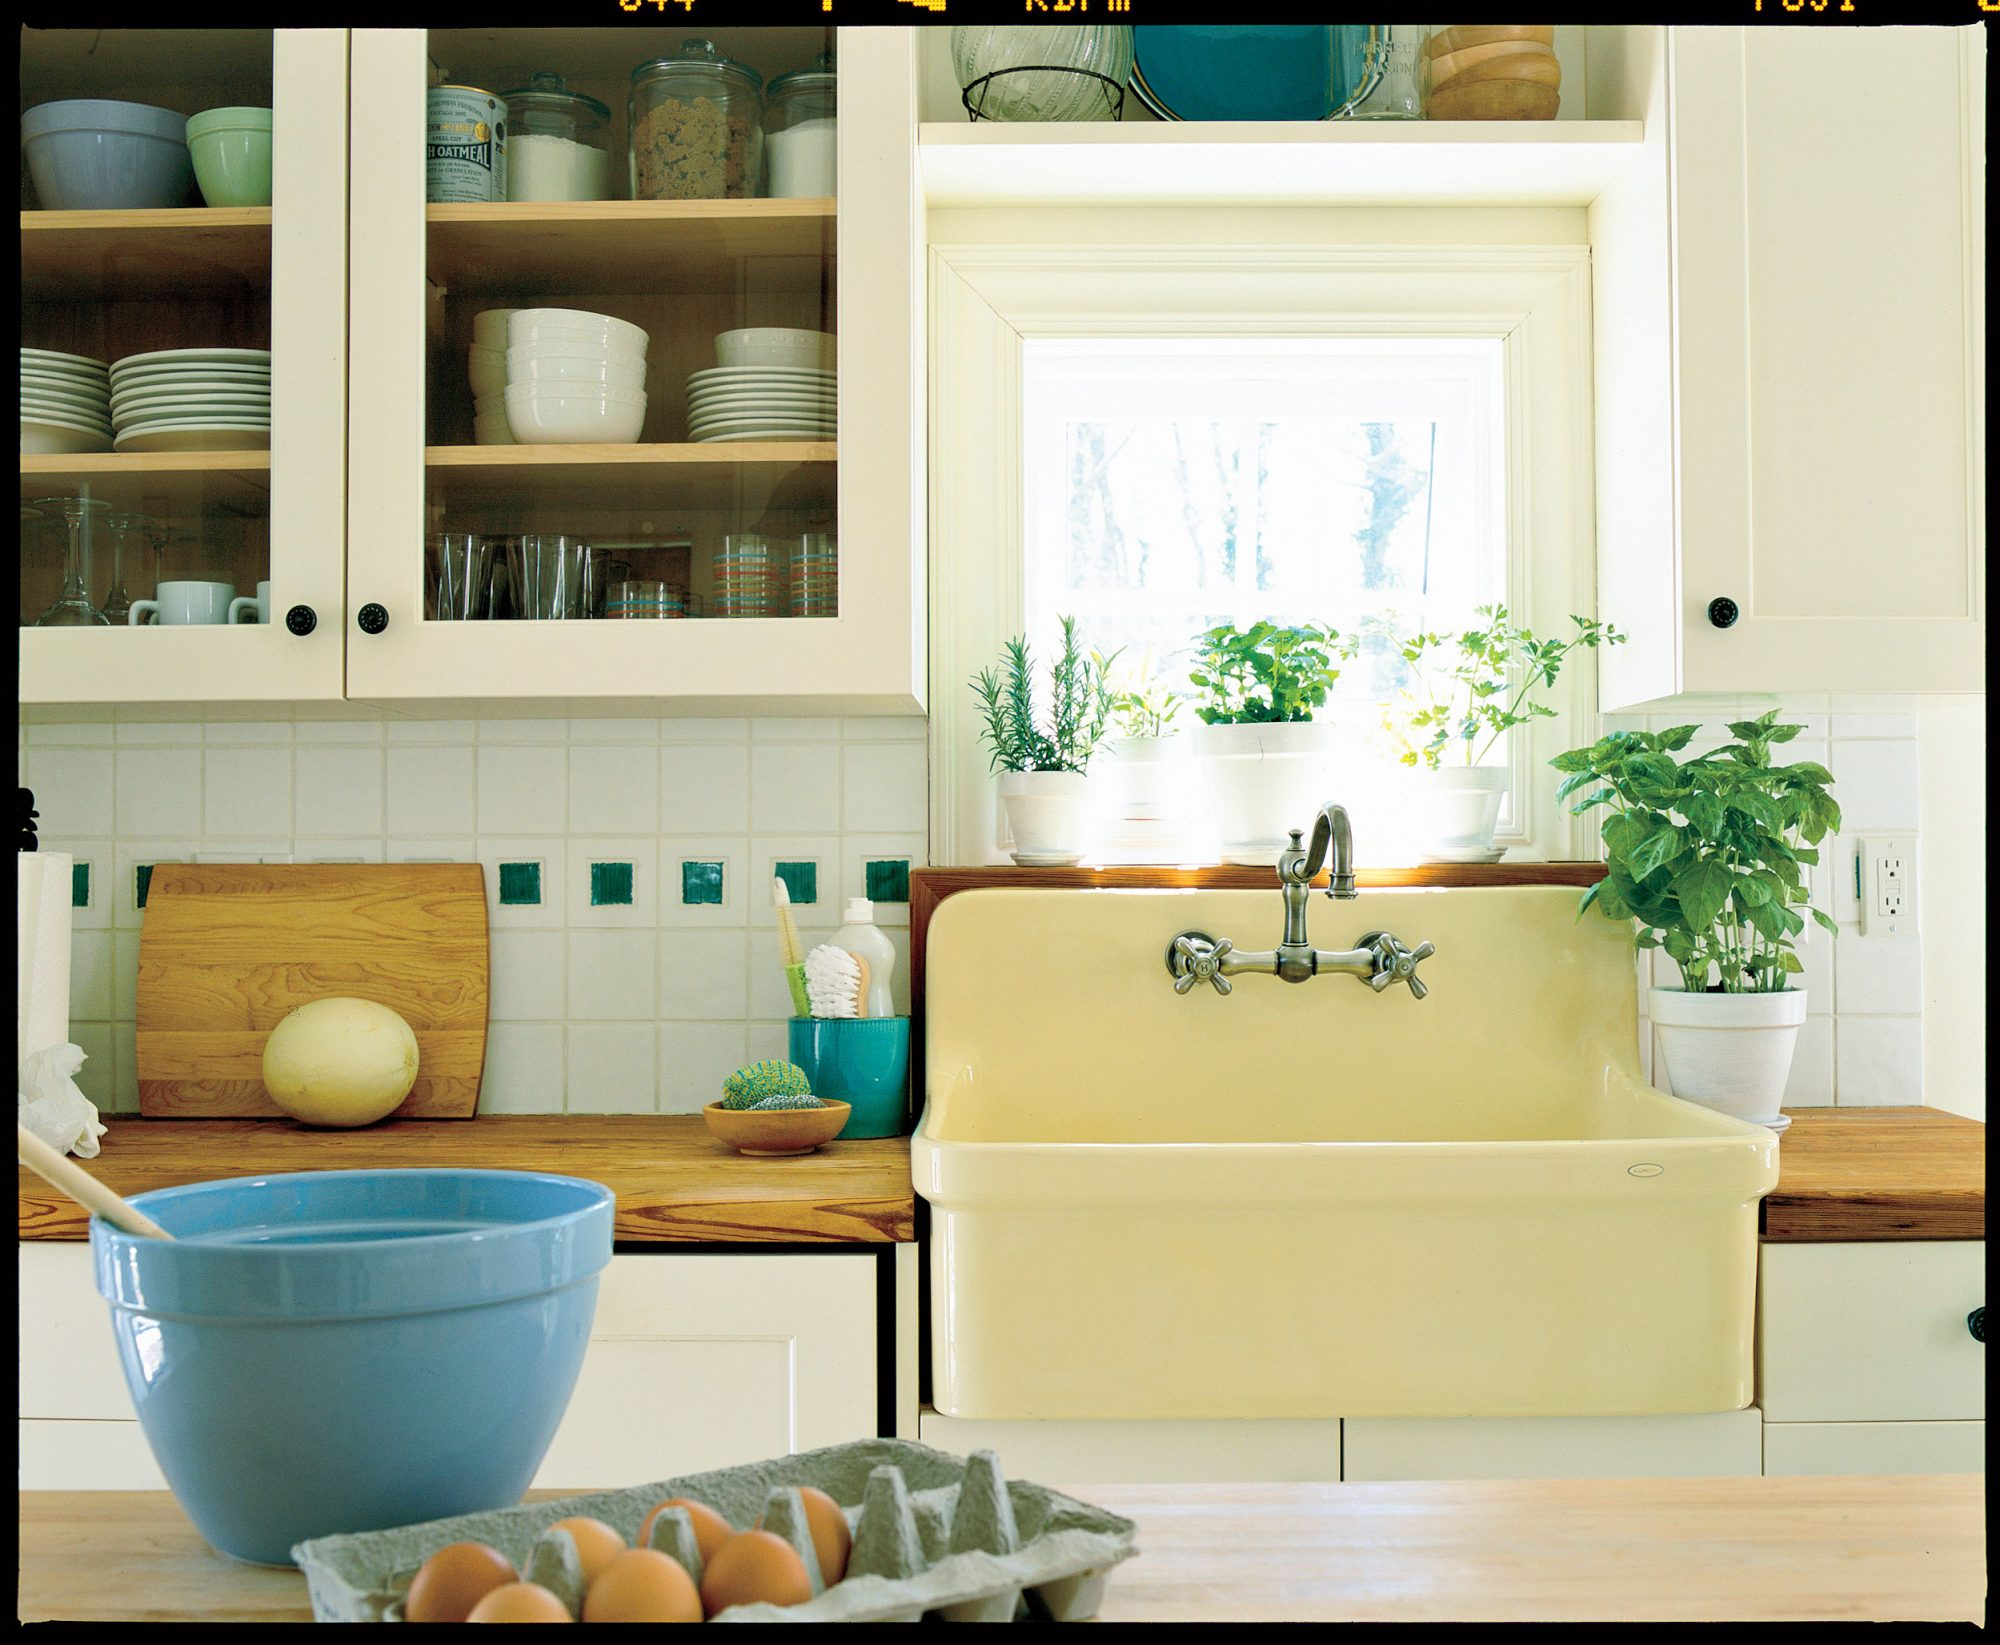 Farm Kitchen Remodeling Ideas: Farm Style Sink